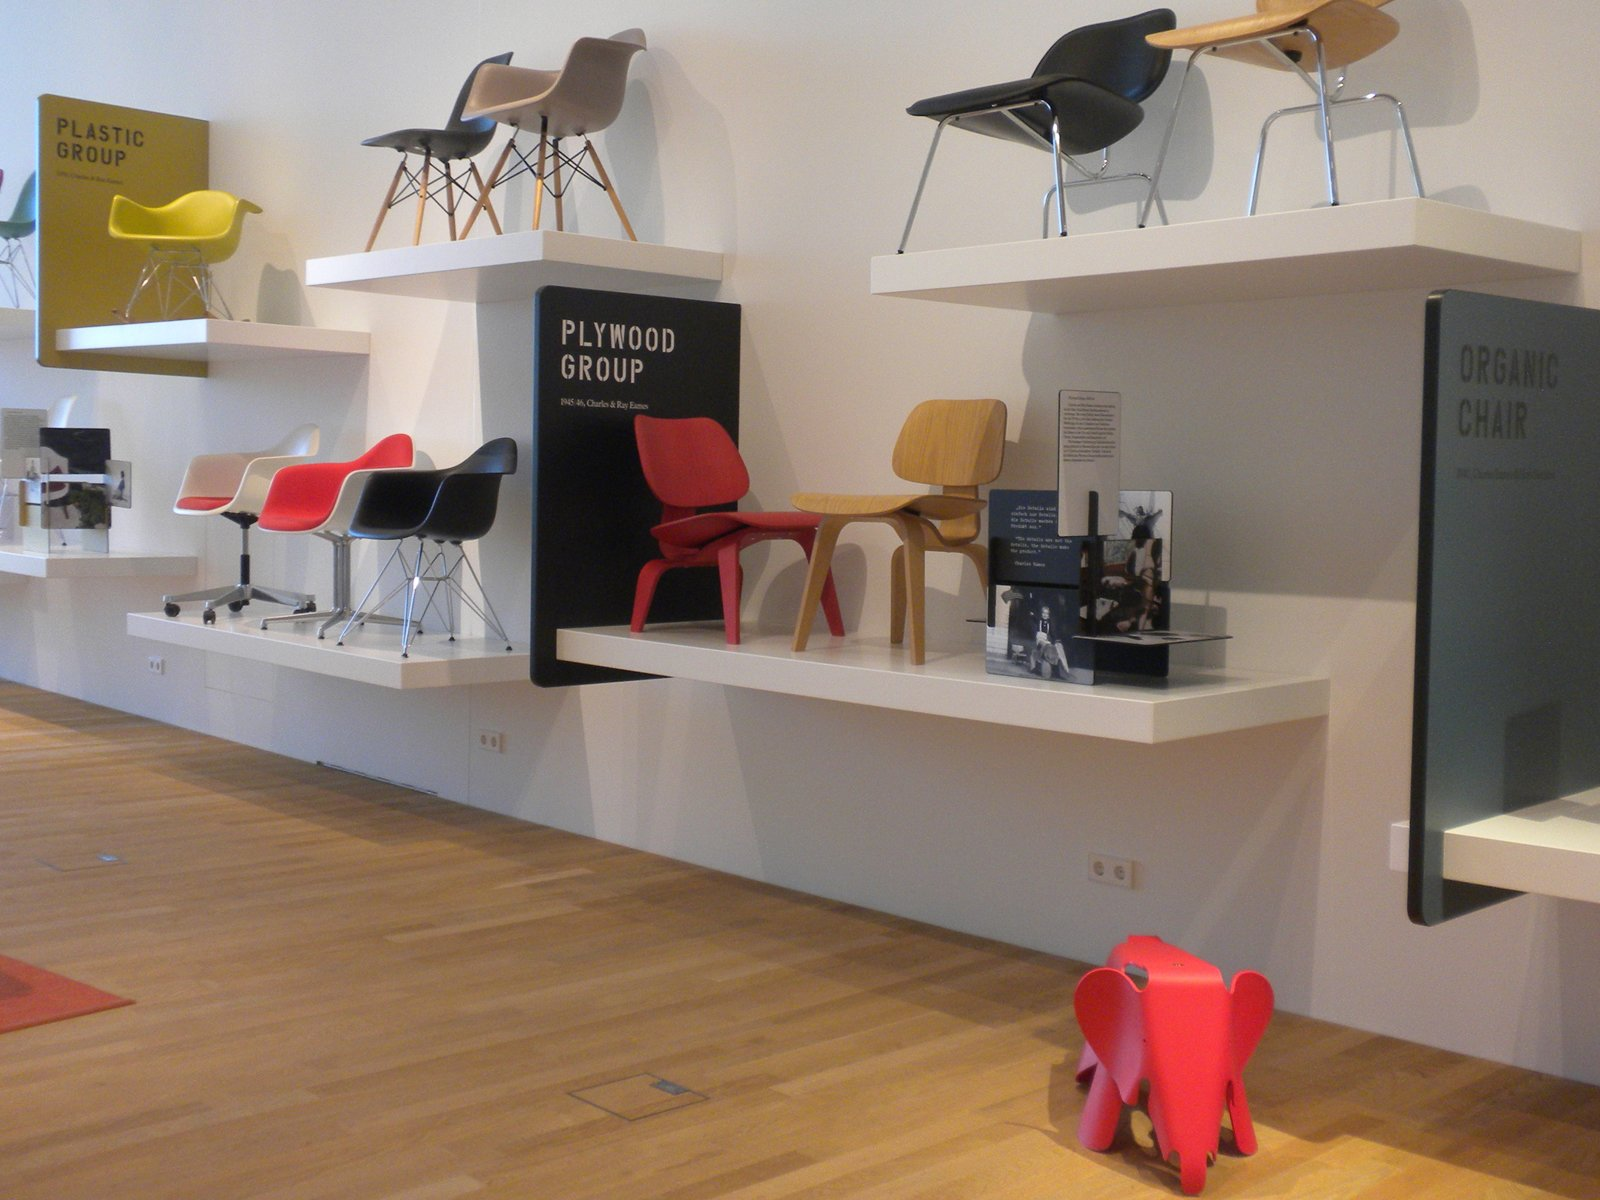 One section of the VitraHaus is dedicated entirely to the Eameses. Among the chairs on display: the LCW molded plywood lounge chairs designed in 1945/46 and the RAR Rocking Chair designed in 1950.  Inside the VitraHaus by Miyoko Ohtake